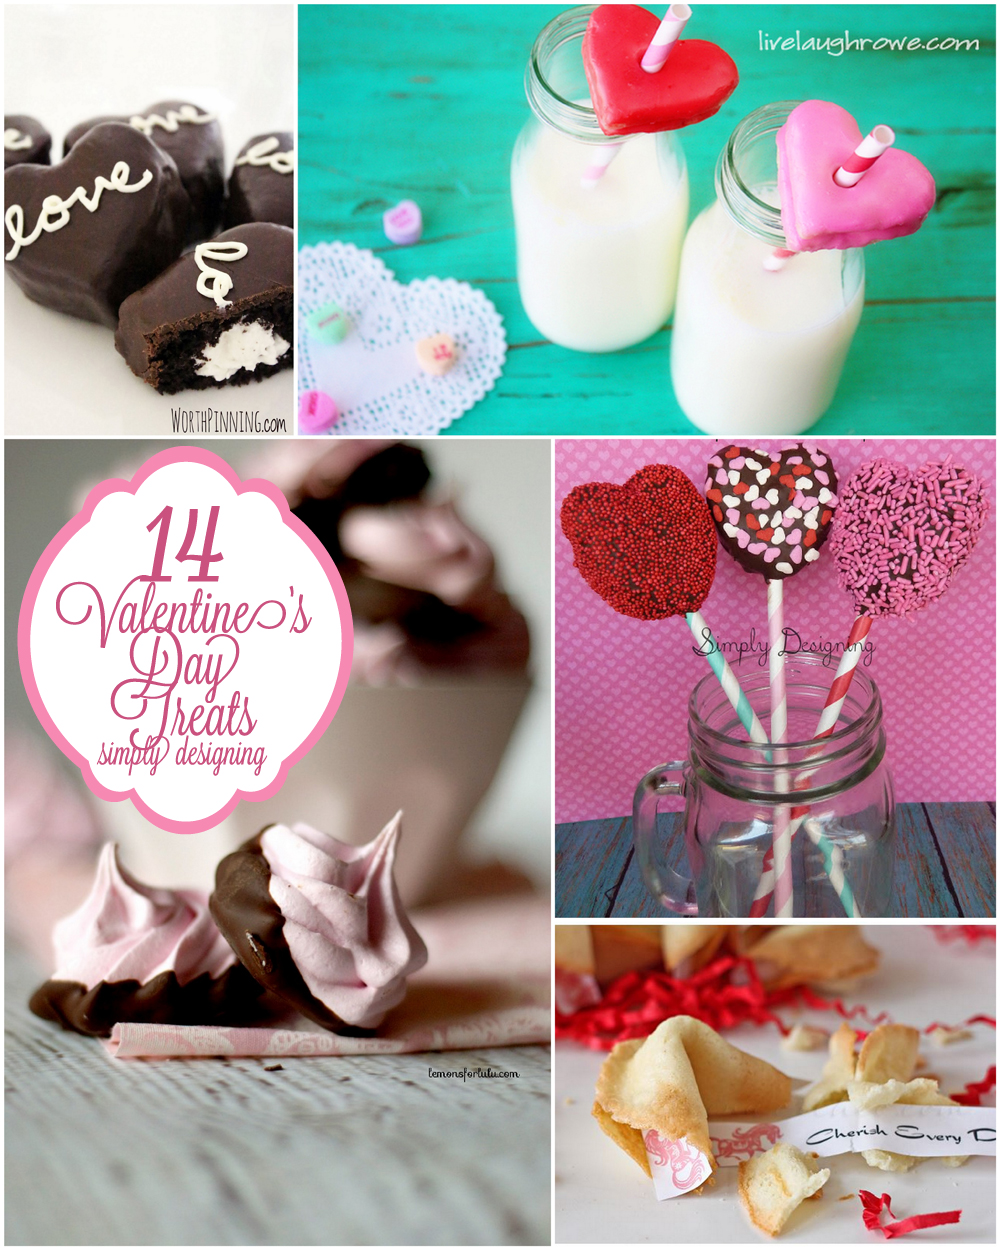 14 Valentine's Day Treats | #valentinesday #recipes #vday